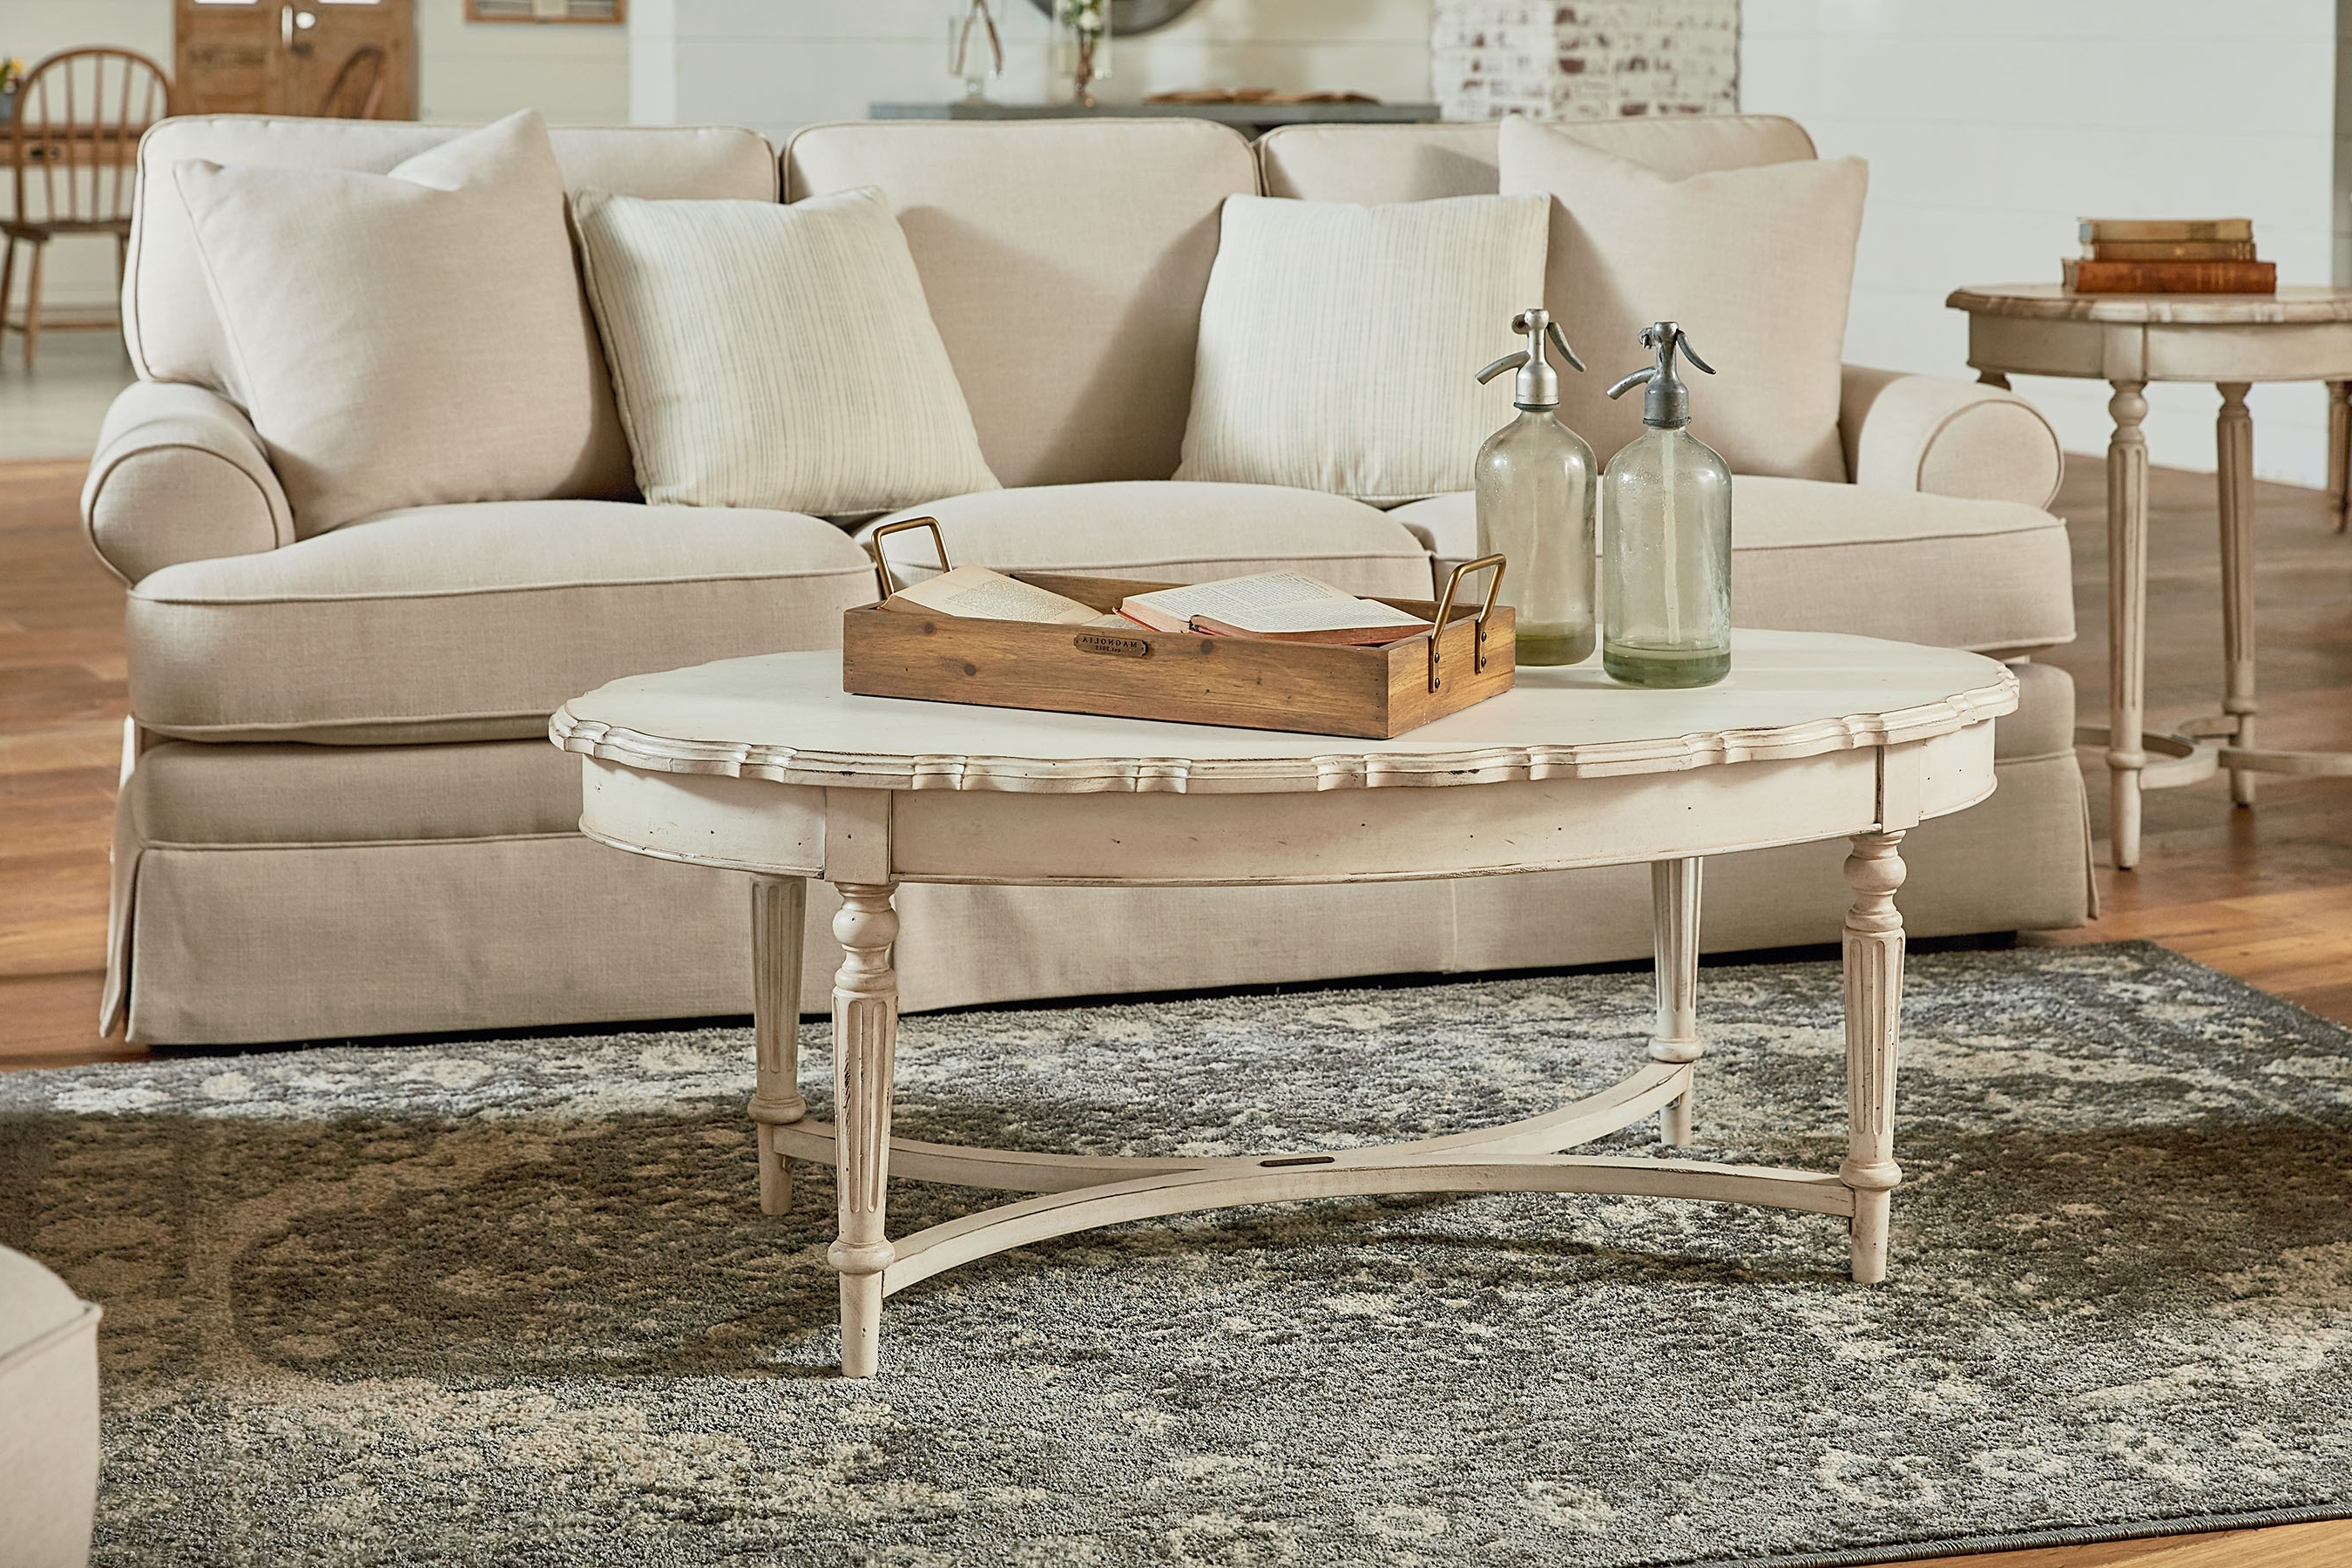 Pie Crust Coffee Table – Magnolia Home With 2018 Magnolia Home Ellipse Cocktail Tables By Joanna Gaines (View 15 of 20)